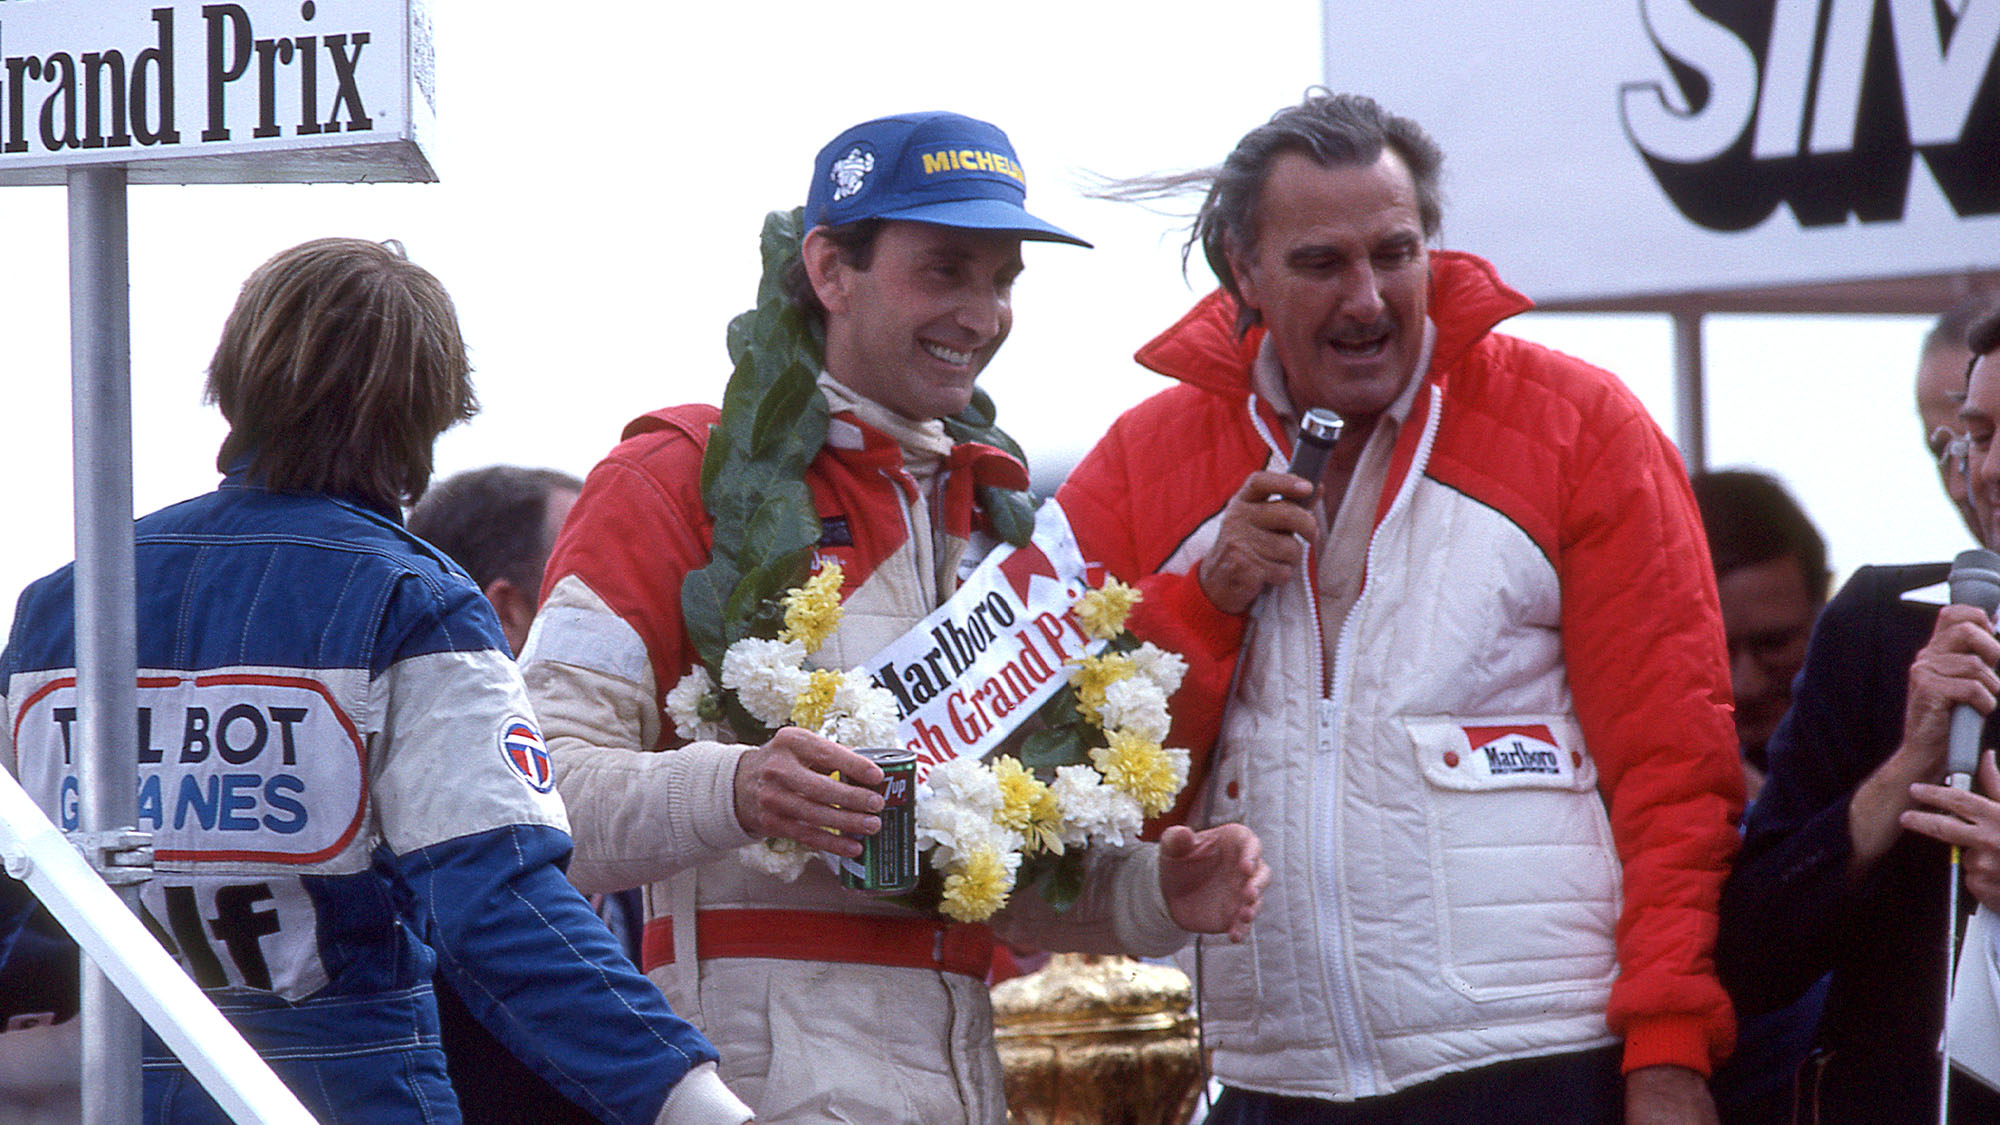 John Watson wins the British GP standing on the podium, 1981. (Photo by: GP Library/Universal Images Group via Getty Images)